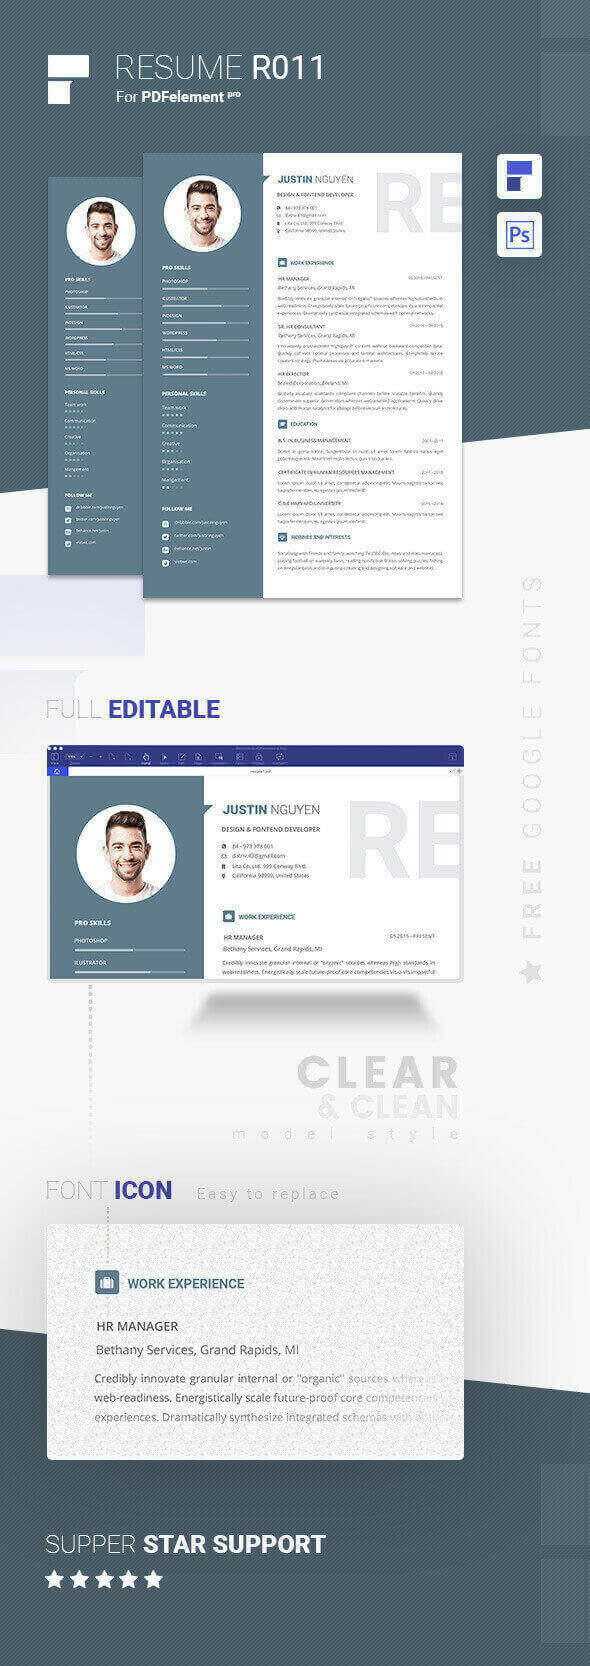 Resume Template - Calmless Gray